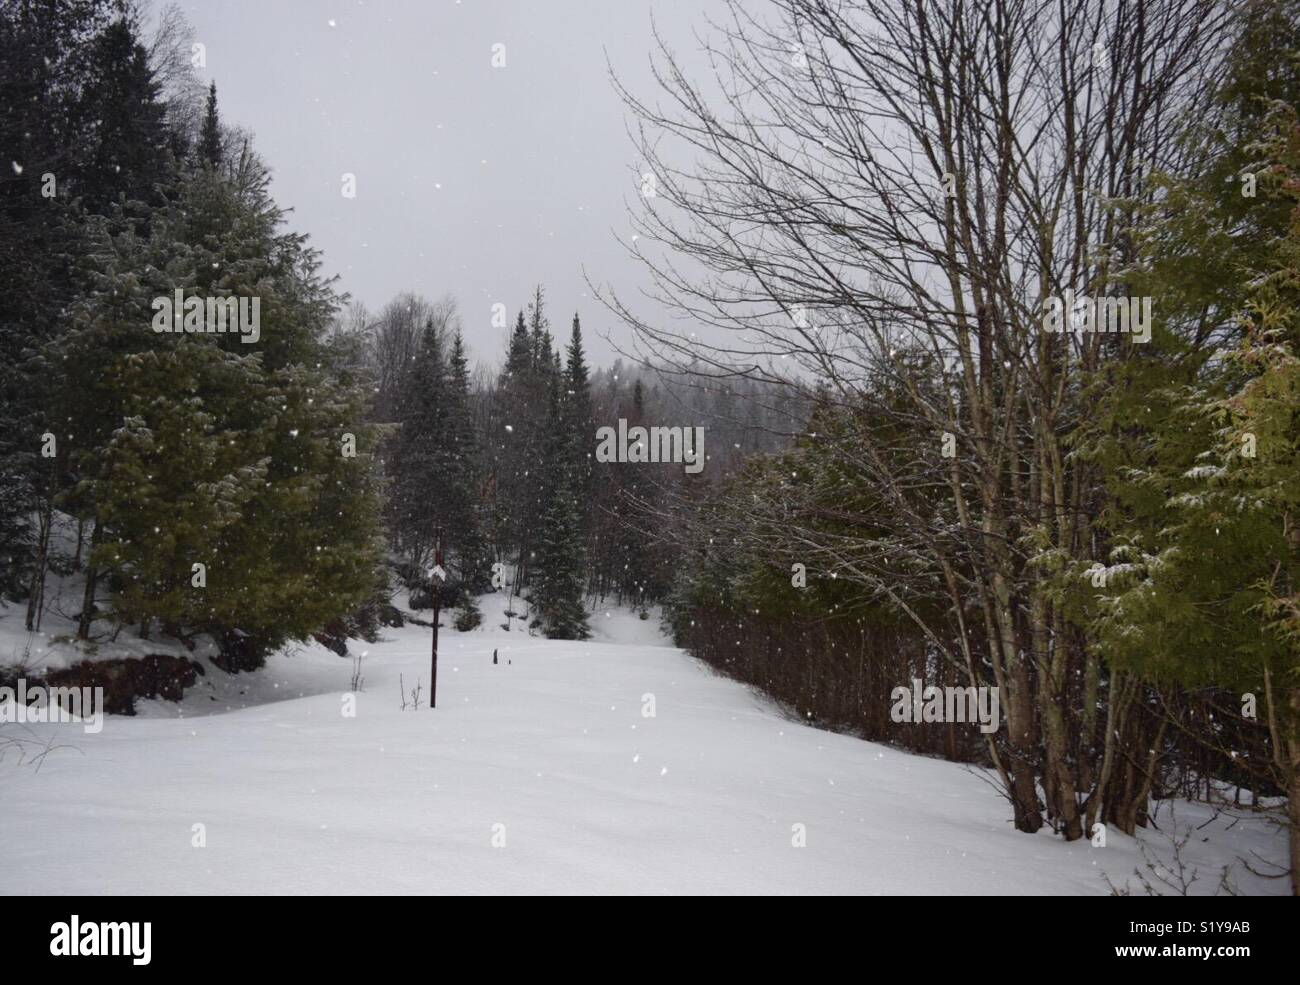 Winter landscape, snowing in the forest - Stock Image